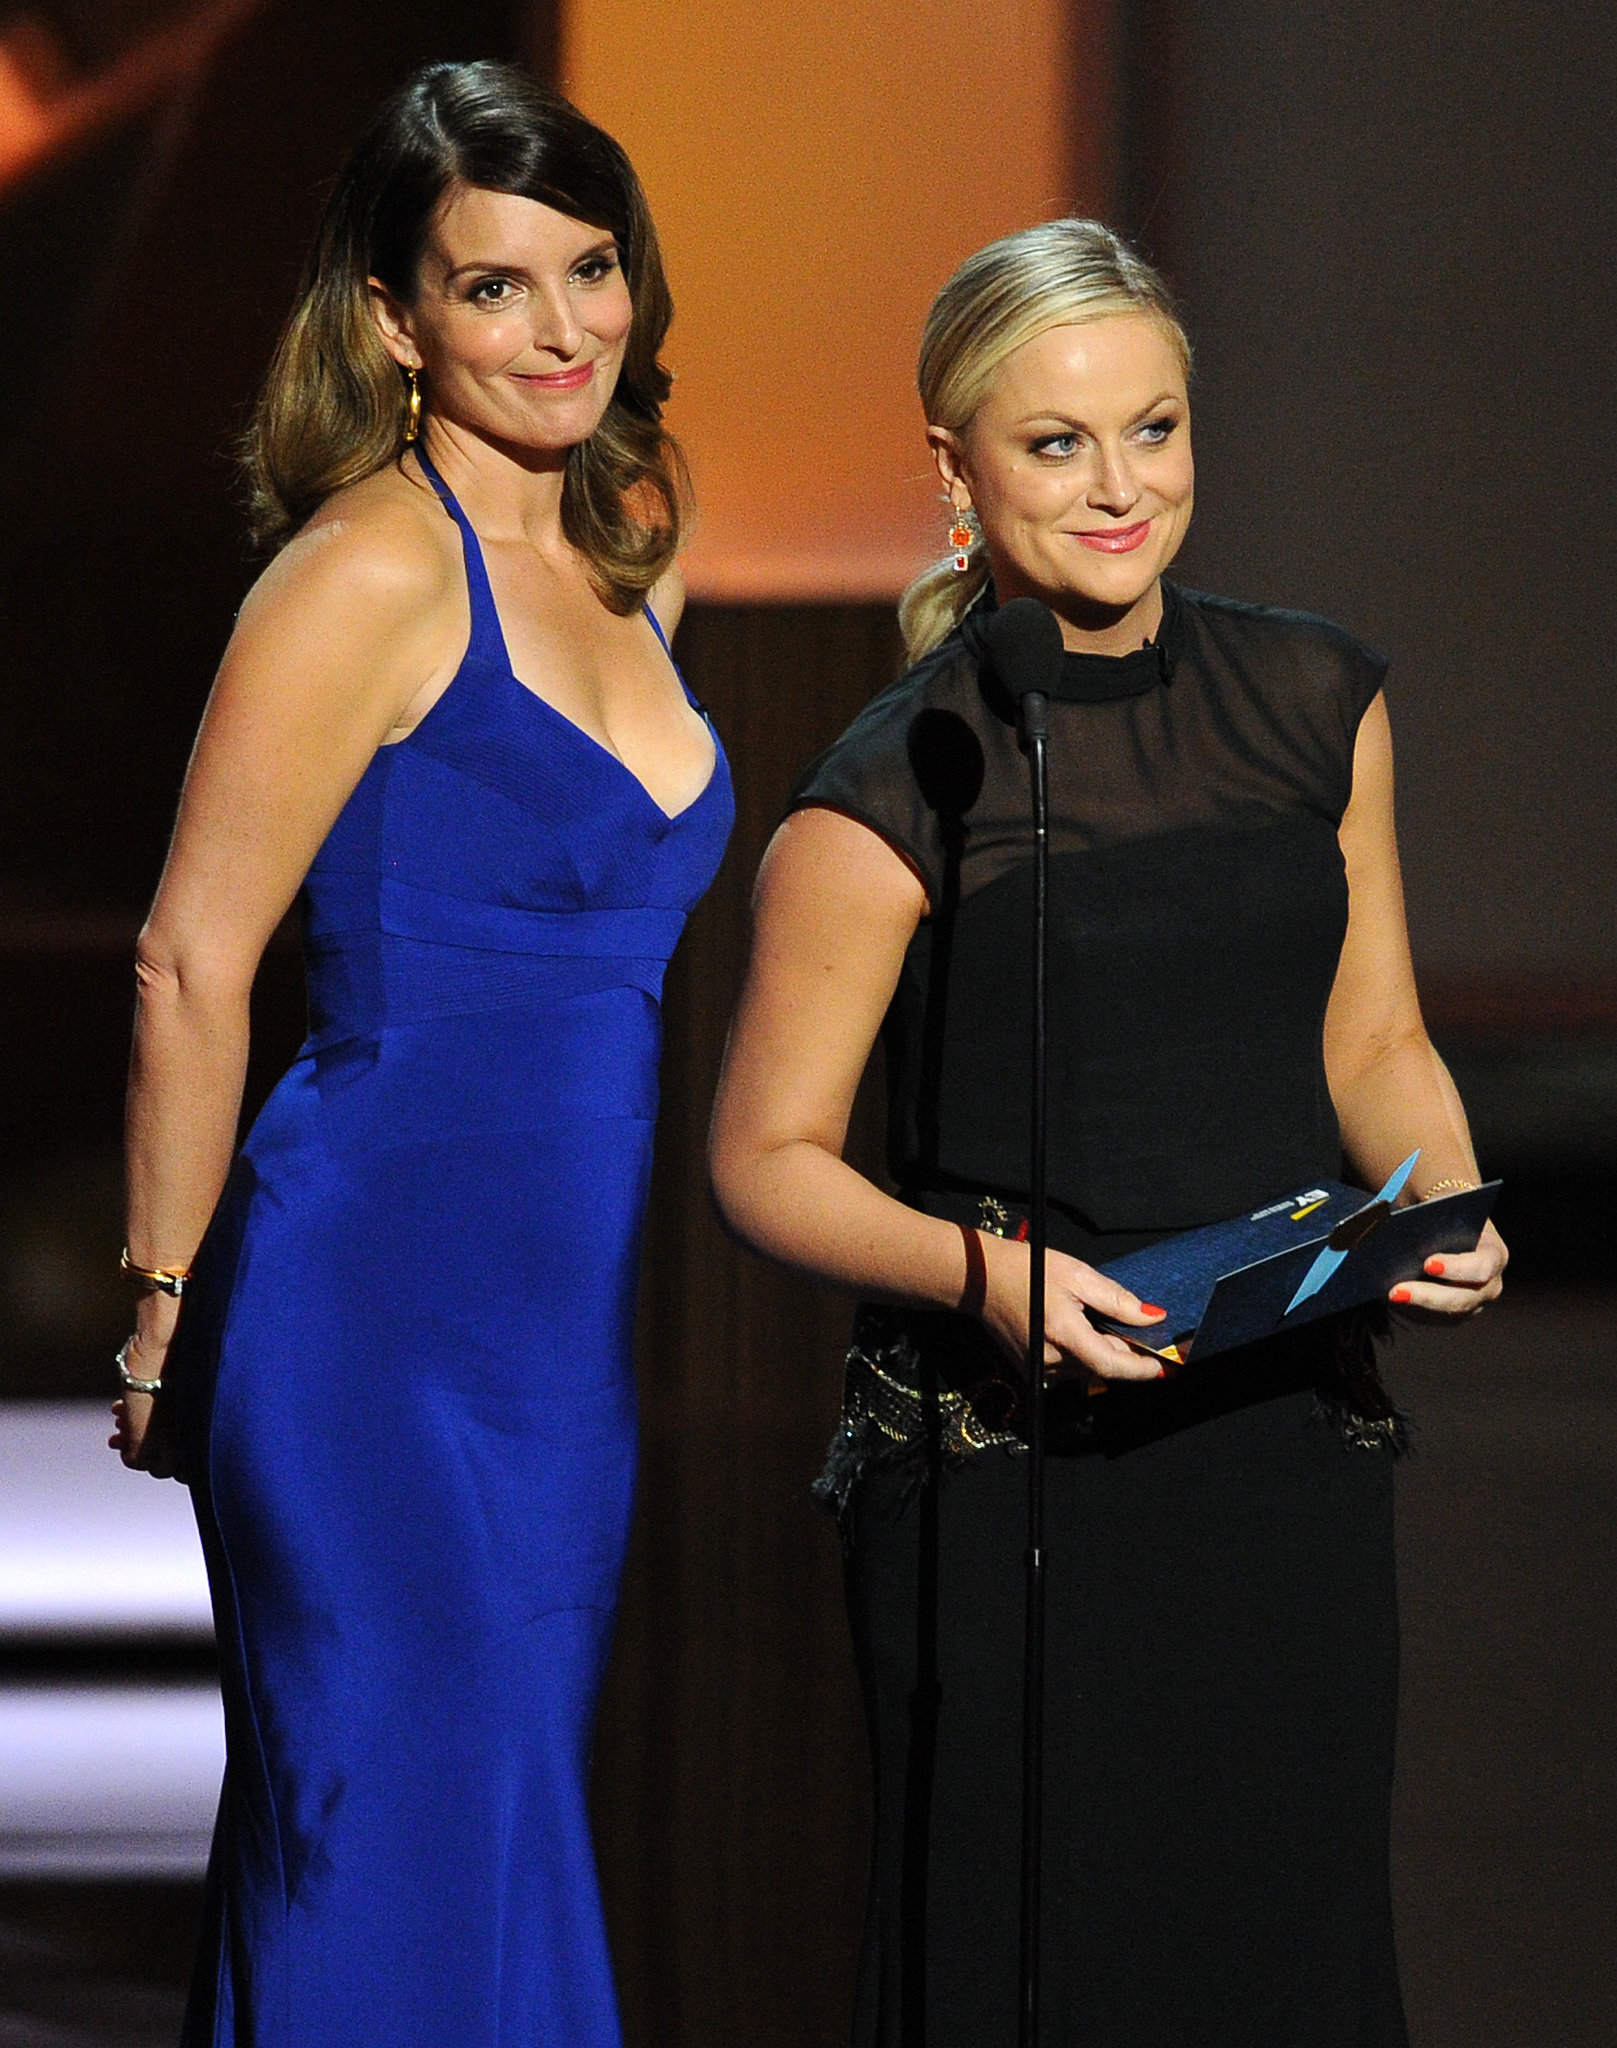 Tina Fey and Amy Poehler had the crowd cracking up at the start of